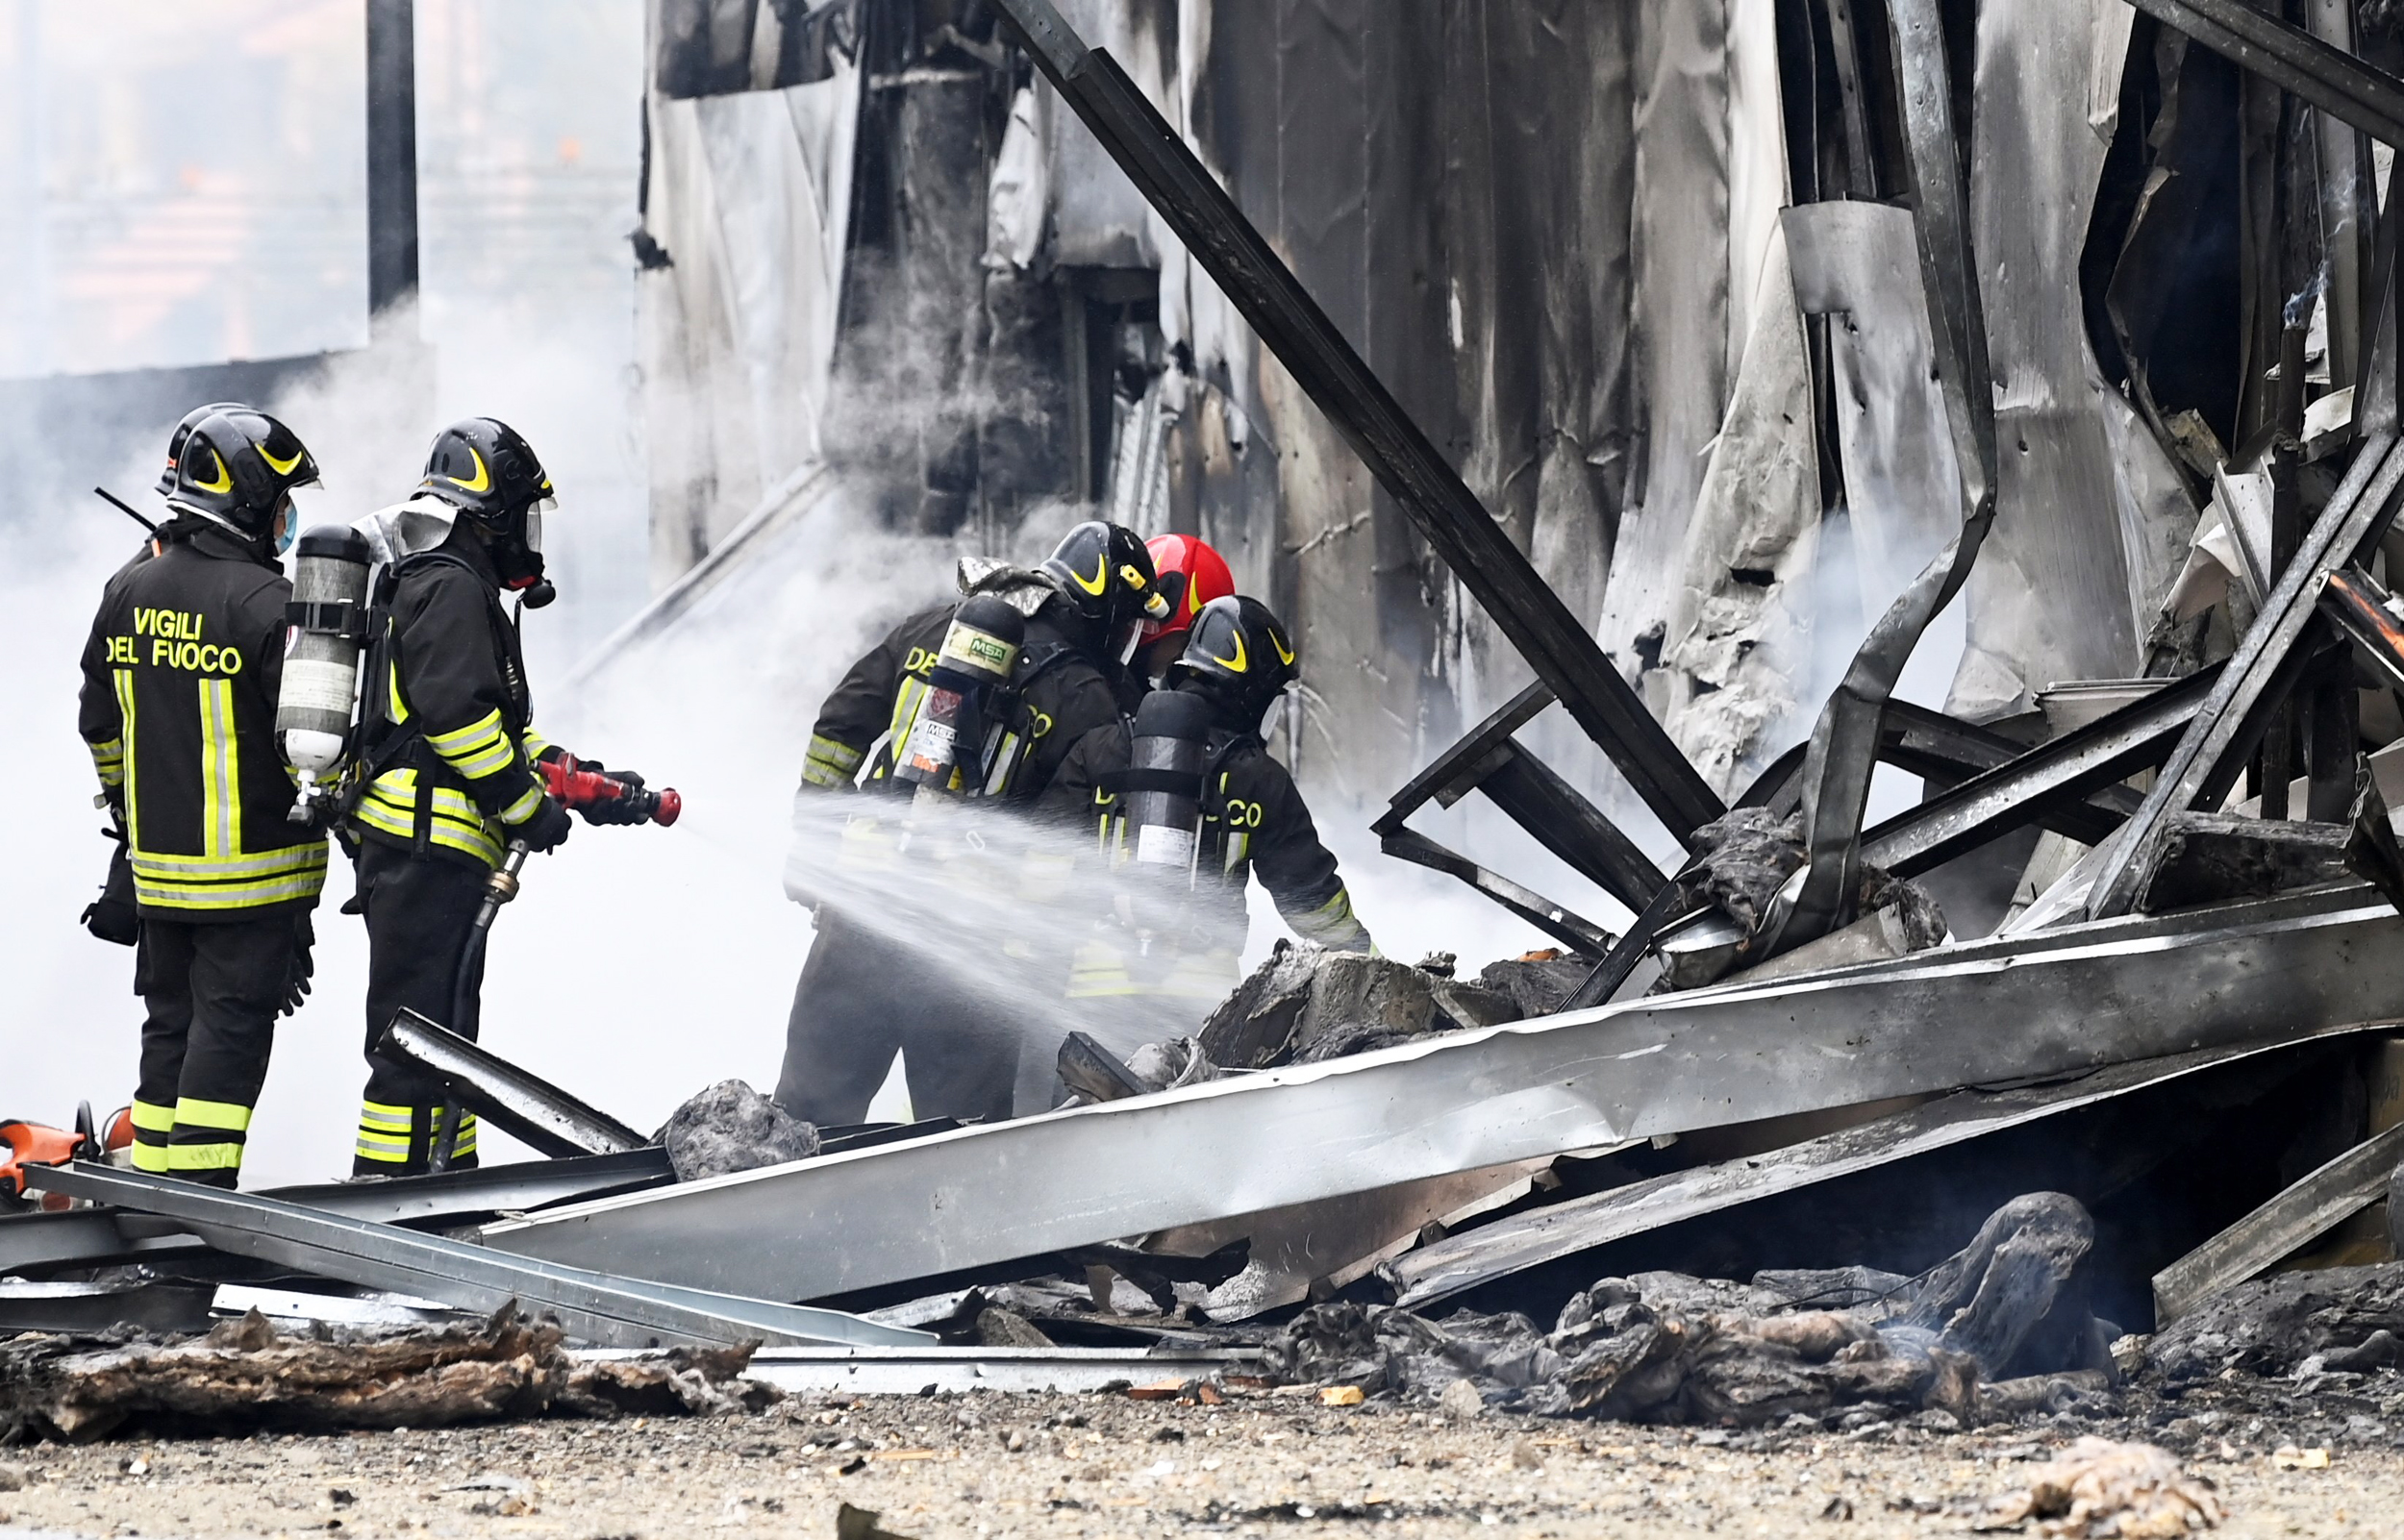 8 reported dead after plane crashes into building in Italy